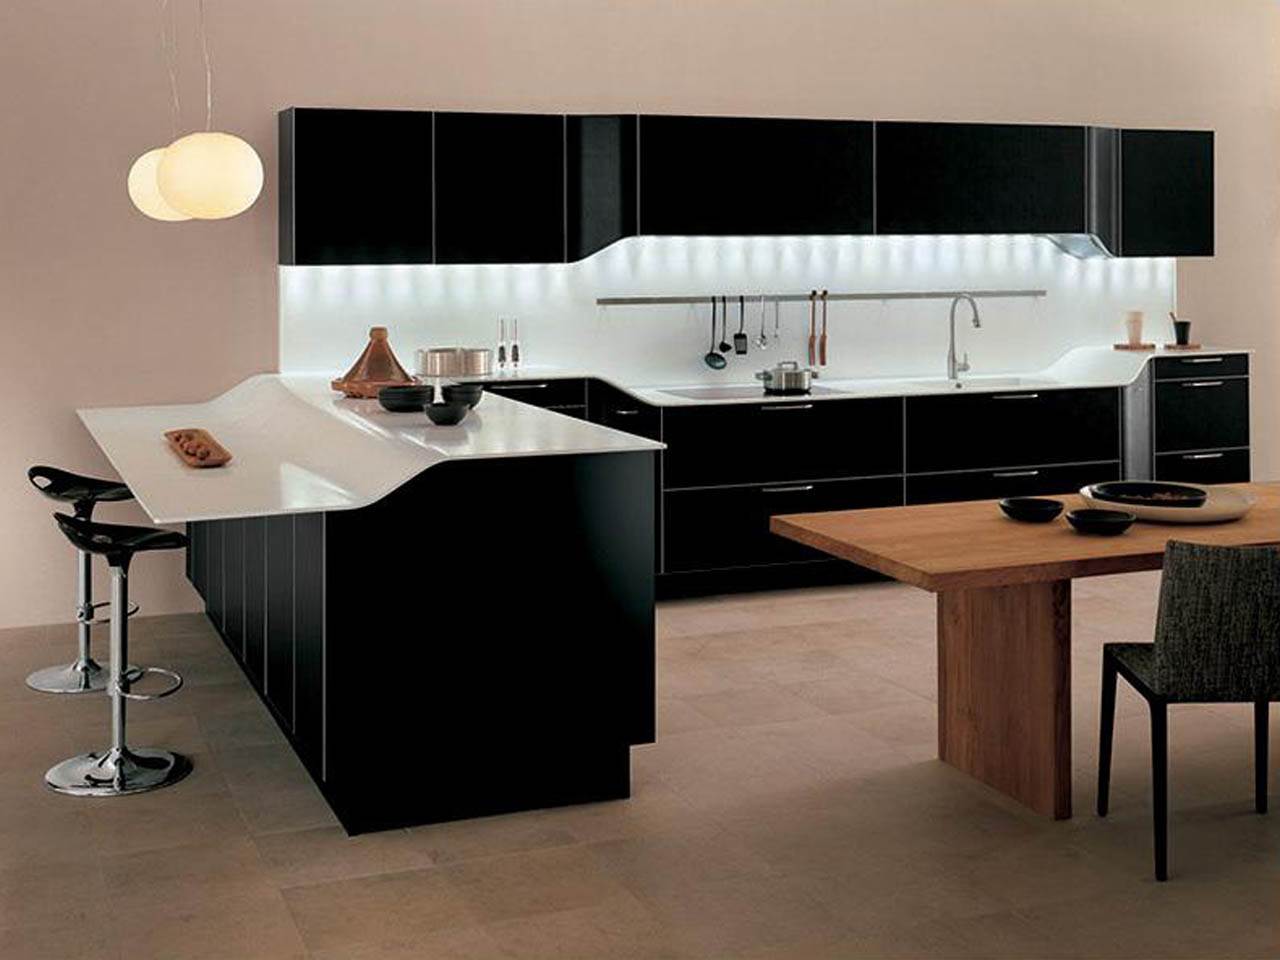 ultramodern-ikea-kitchen-cabinets-black-paint-cabinet-contemporary-style-and-astounding-shiny-white-countertops-also-creative-hidden-light-decor-under-wall-storage-with-rta-kitchen-cabinets-and-qualit